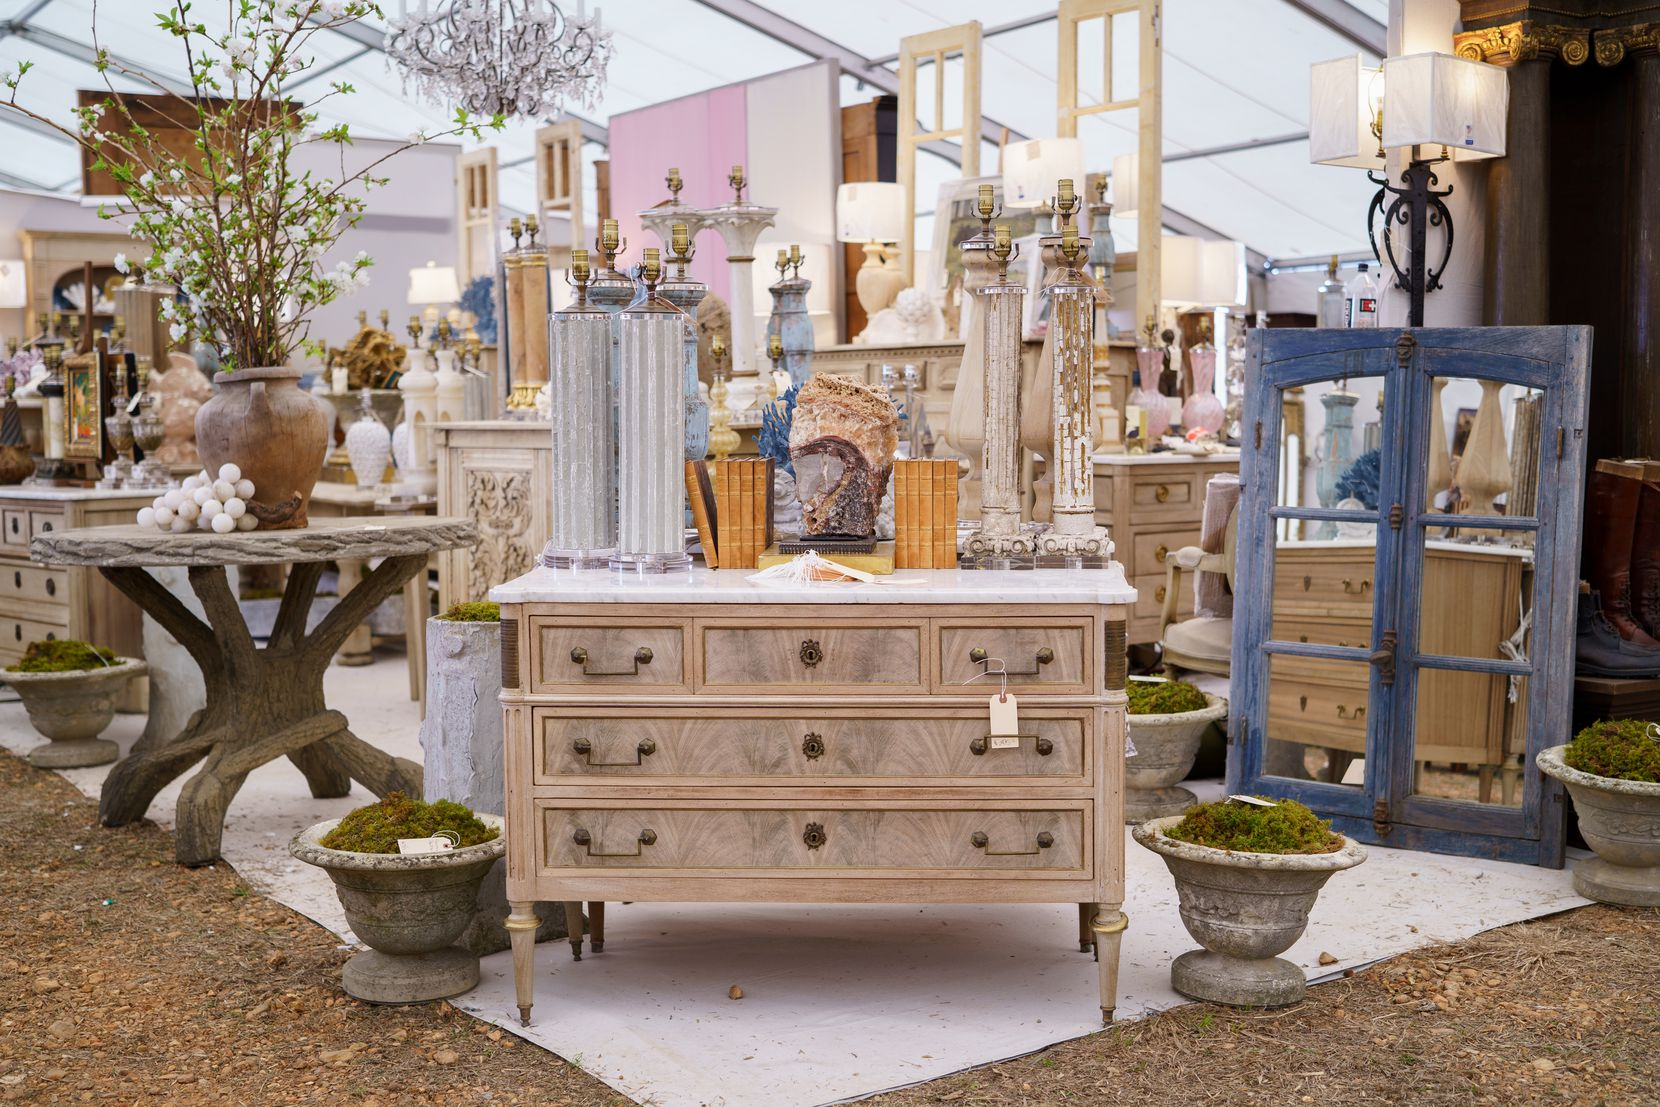 The Marburger Farm Antique Show features nearly 300 dealers from around the country.